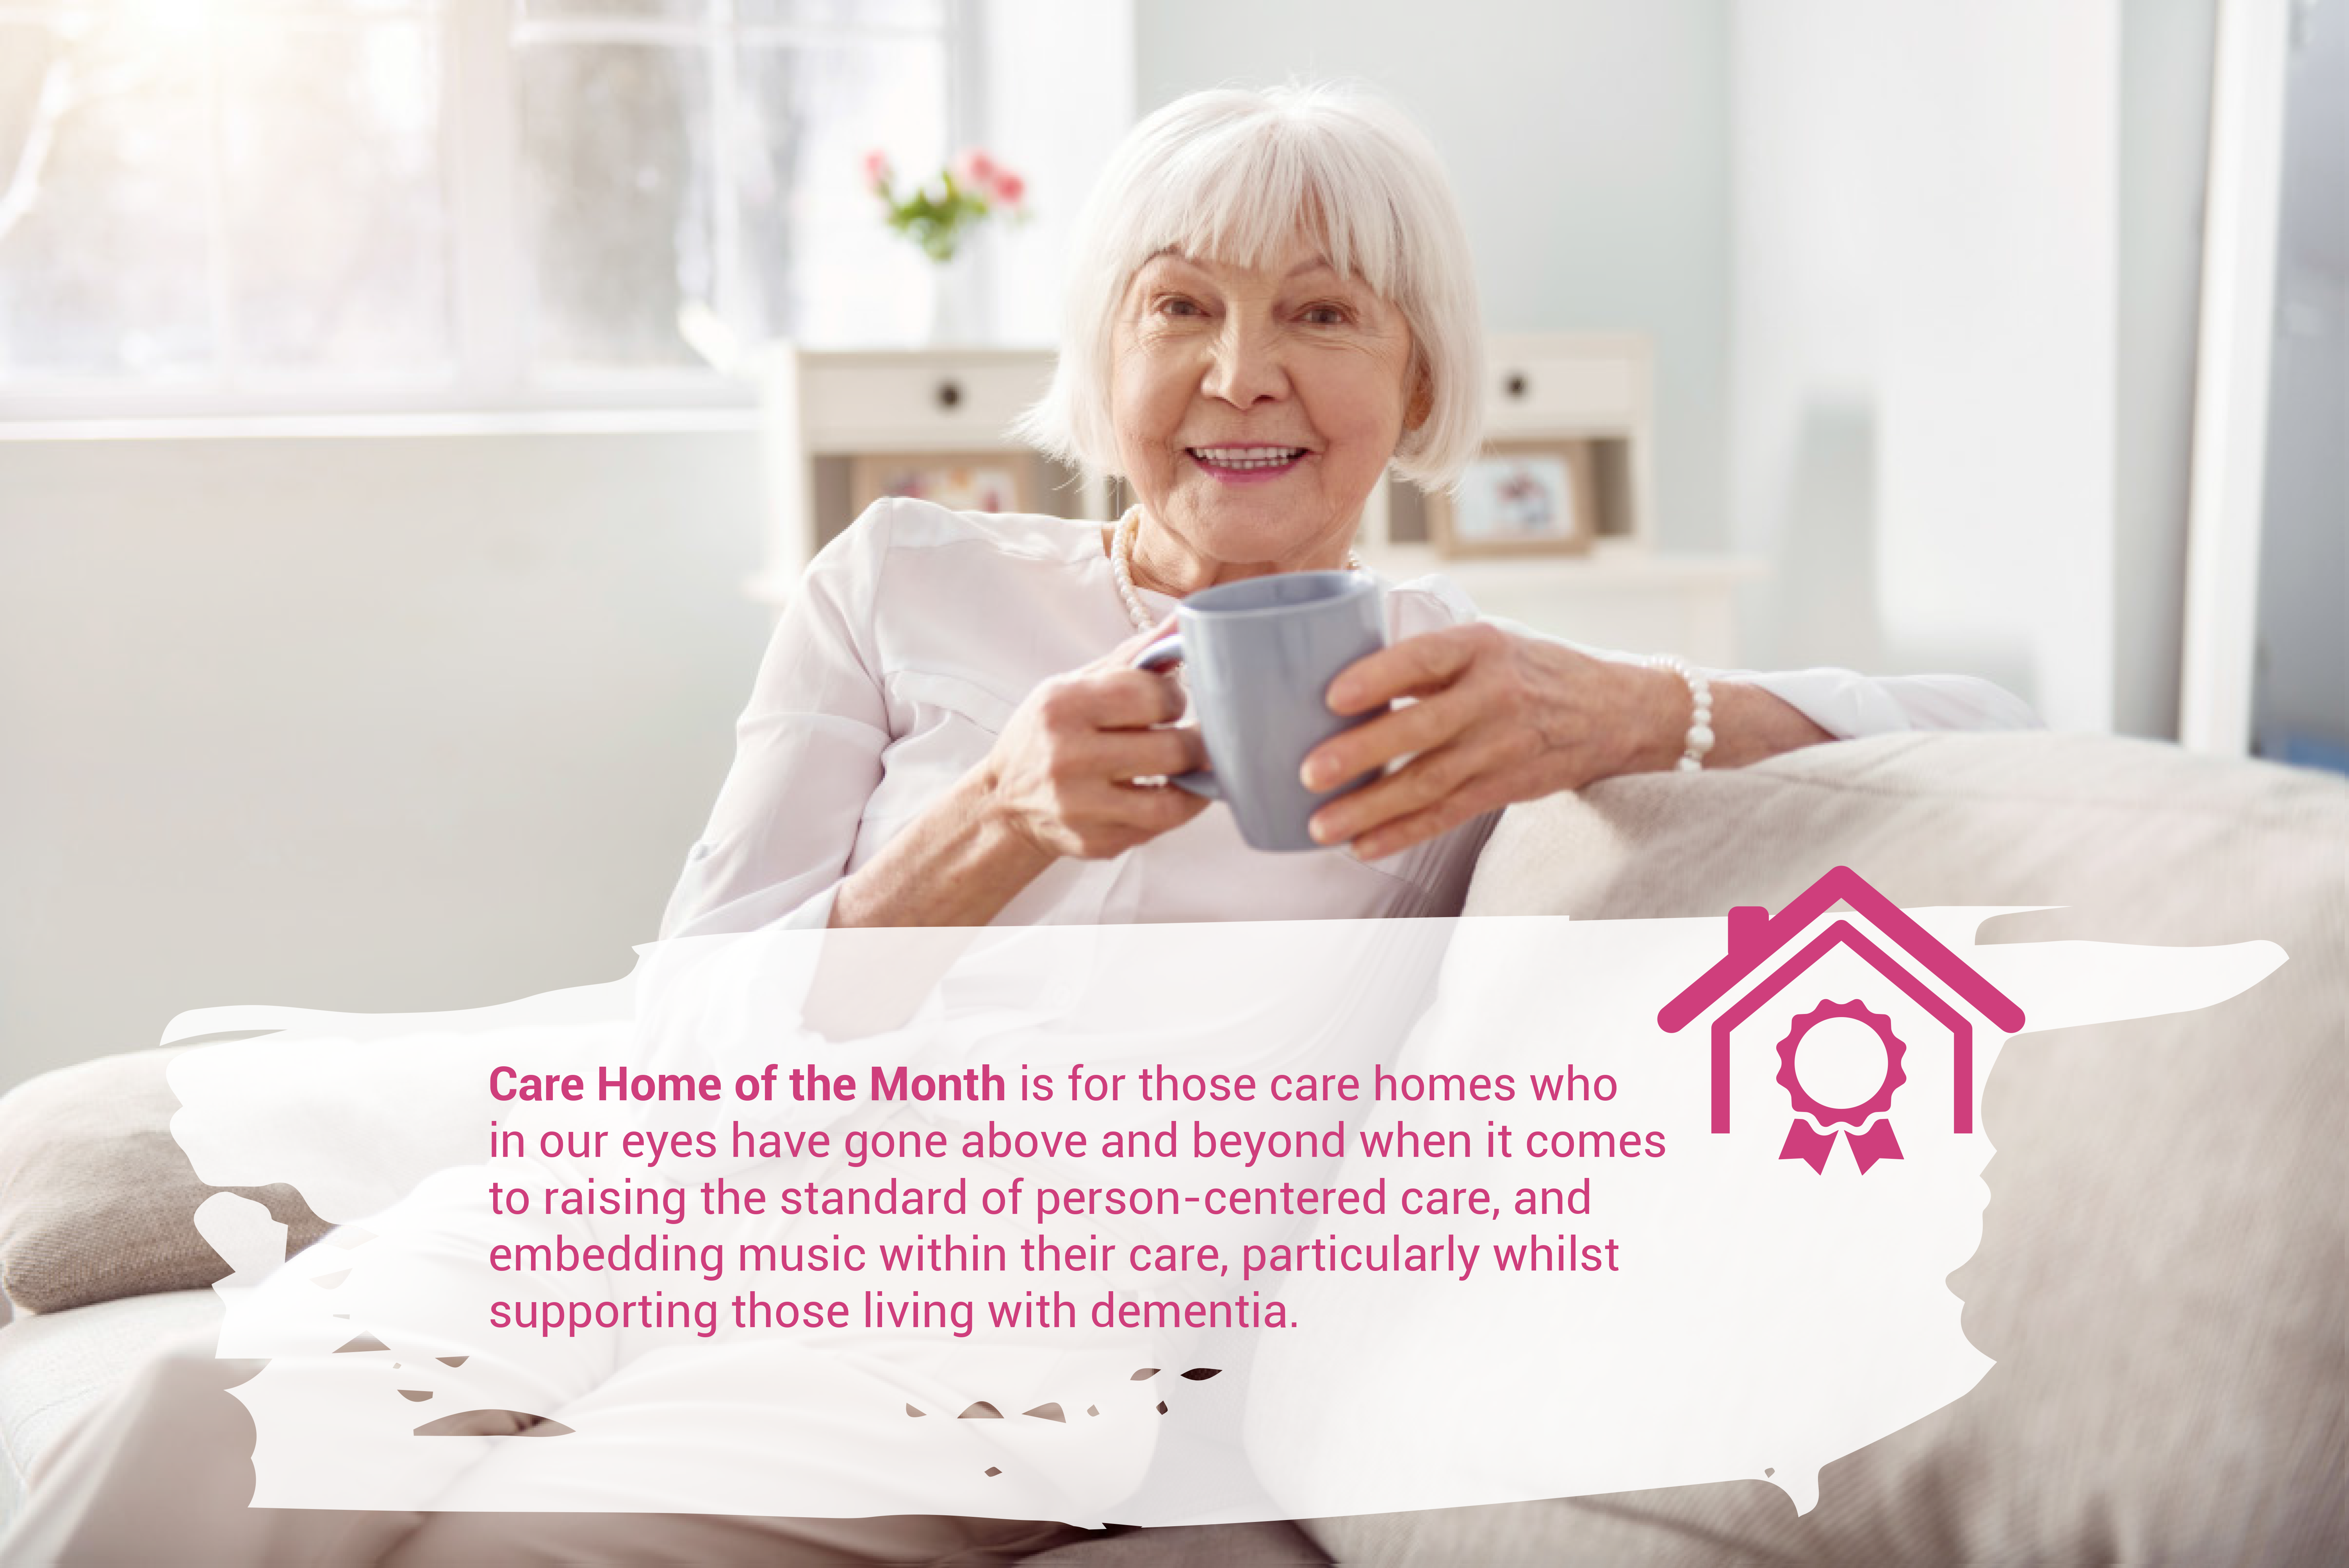 https://musica-music.co.uk/wp-content/uploads/2019/05/care-home-awards-1.png